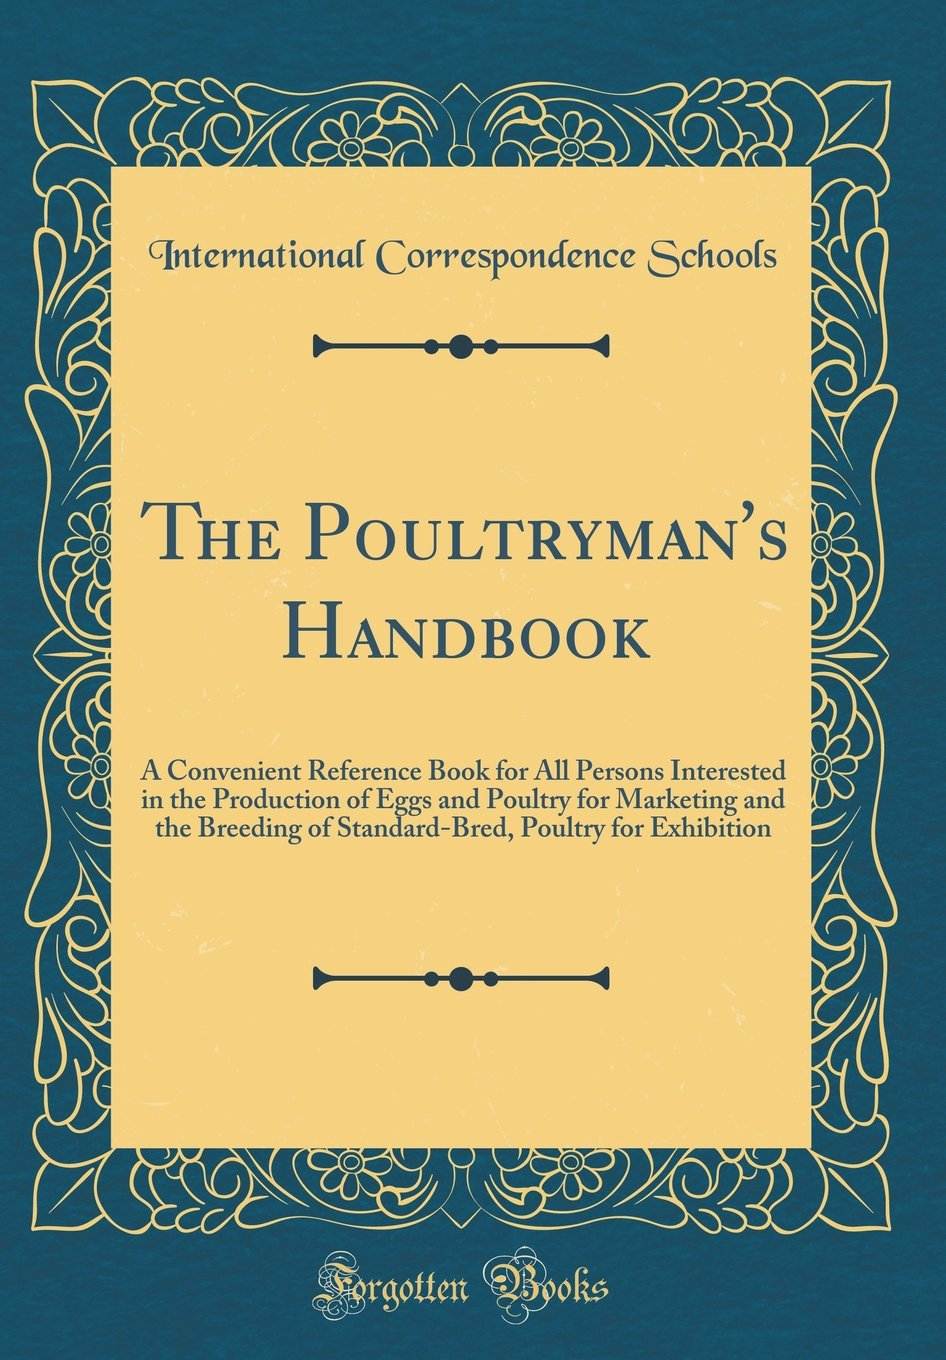 Download The Poultryman's Handbook: A Convenient Reference Book for All Persons Interested in the Production of Eggs and Poultry for Marketing and the Breeding ... Poultry for Exhibition (Classic Reprint) PDF